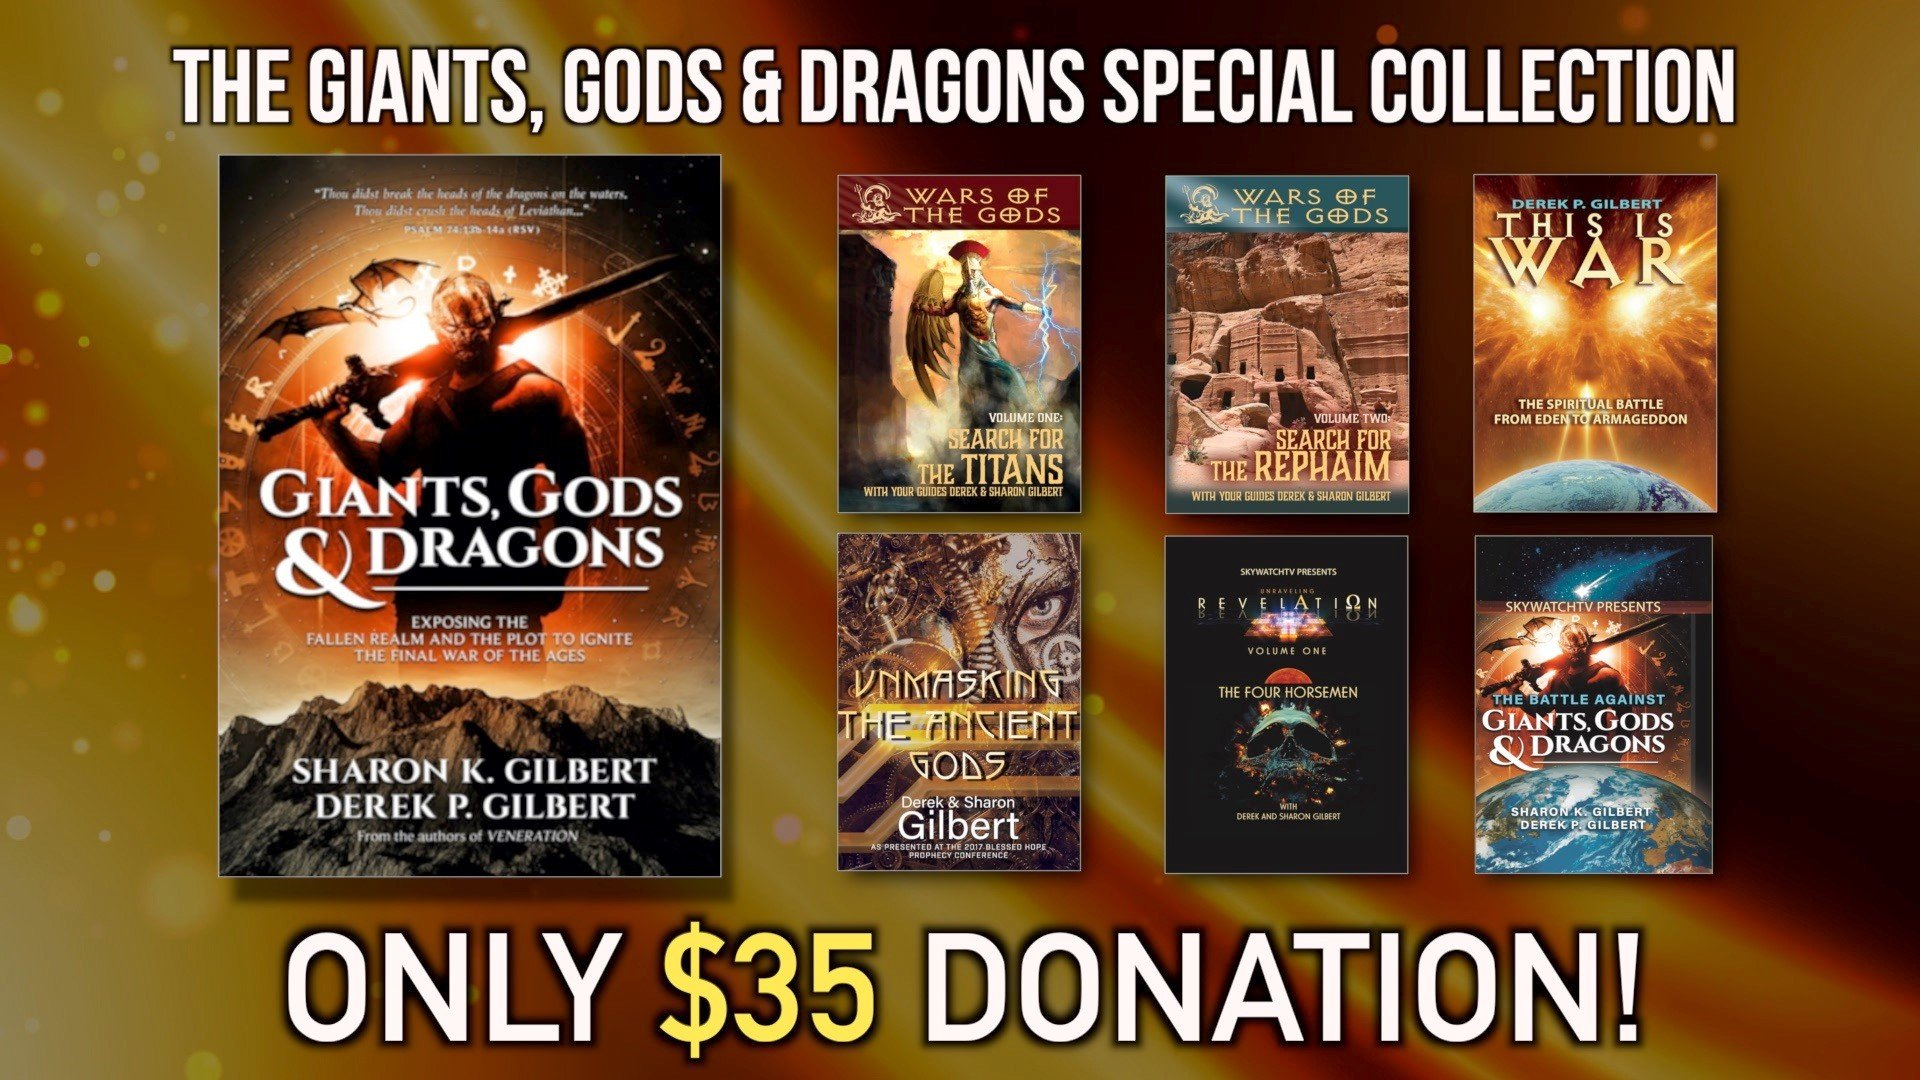 FREE! OVER $200.00 IN FREE DVDS WITH THE GROUNDBREAKING NEW BOOK